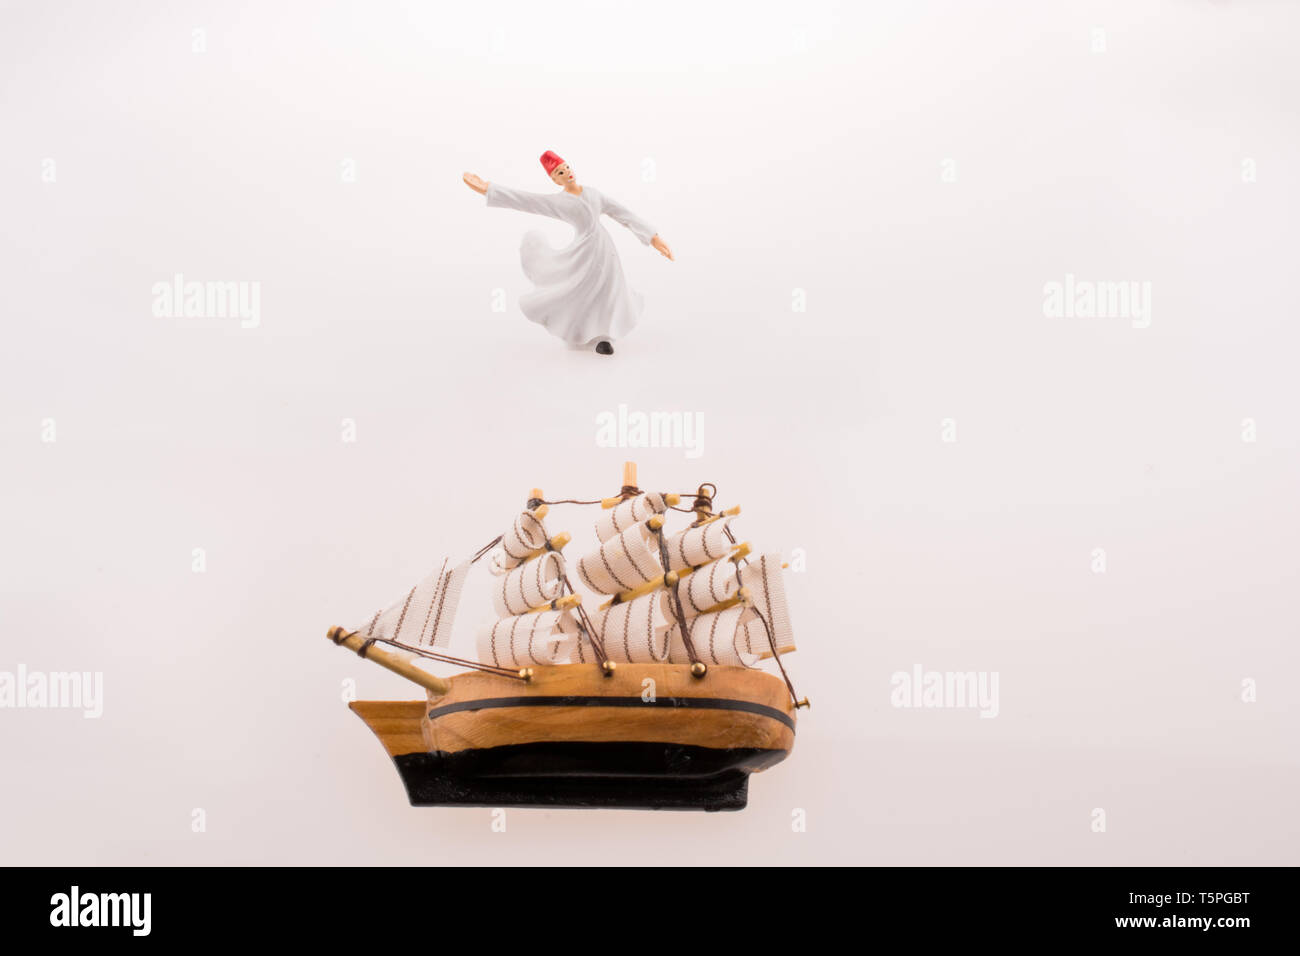 Sufi Dervish near a ship on a white background - Stock Image